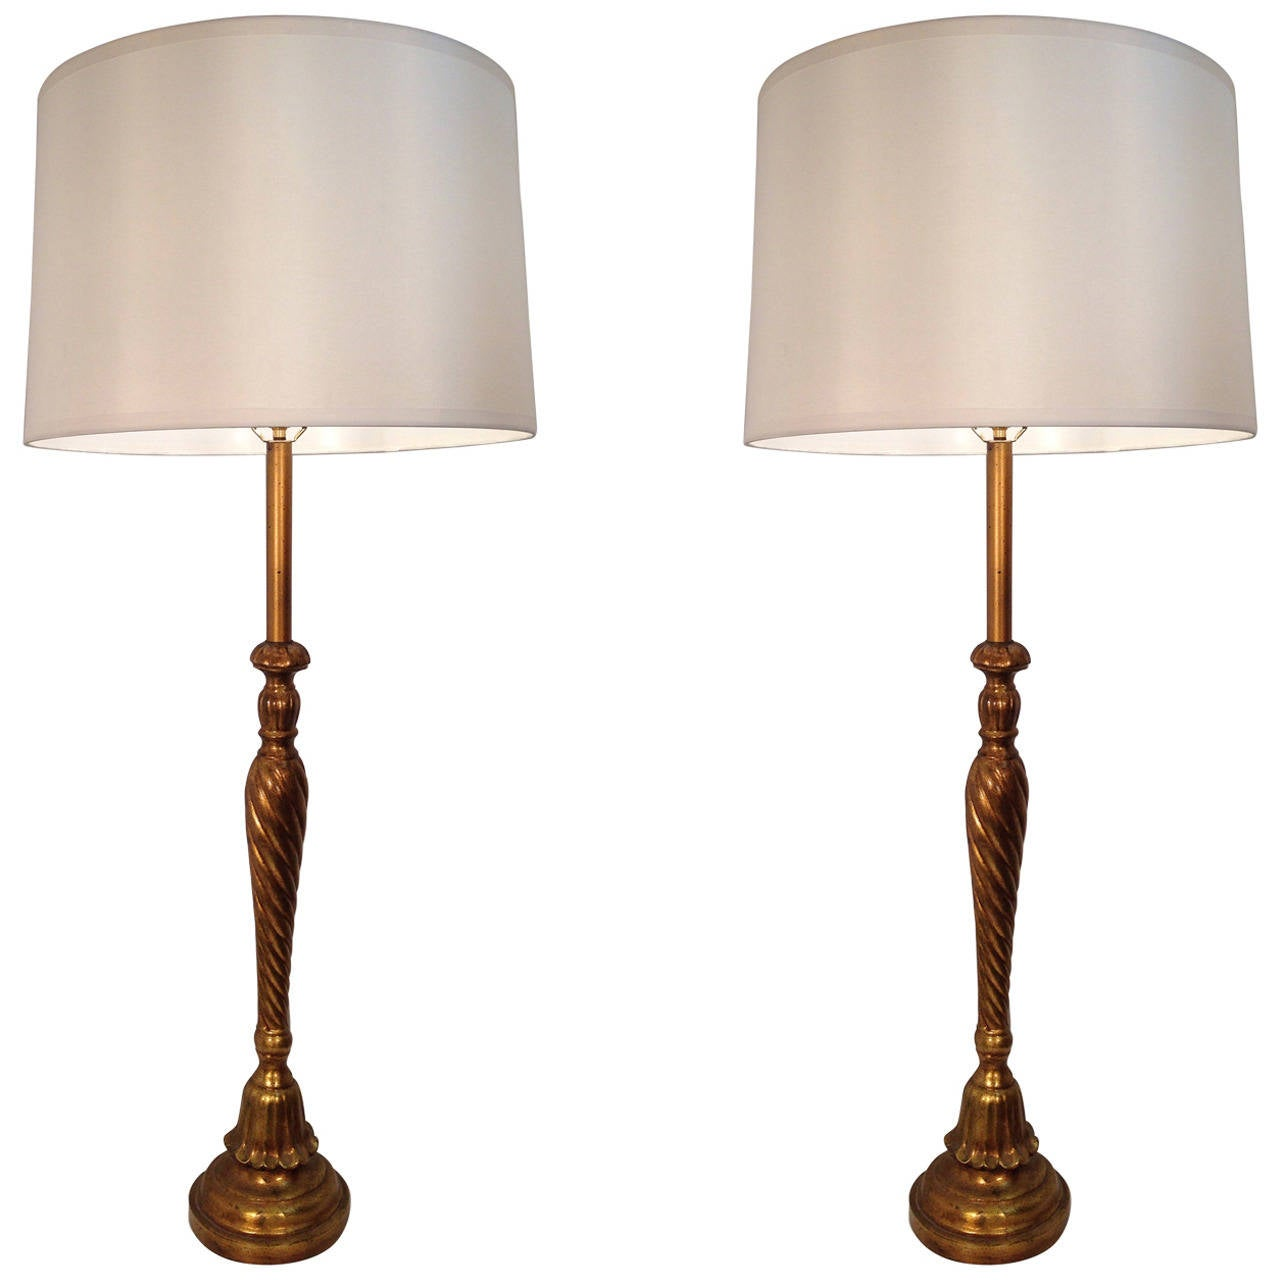 Handmade pair of tall table lamps by maitland smith for sale at 1stdibs - Hand made lamps ...